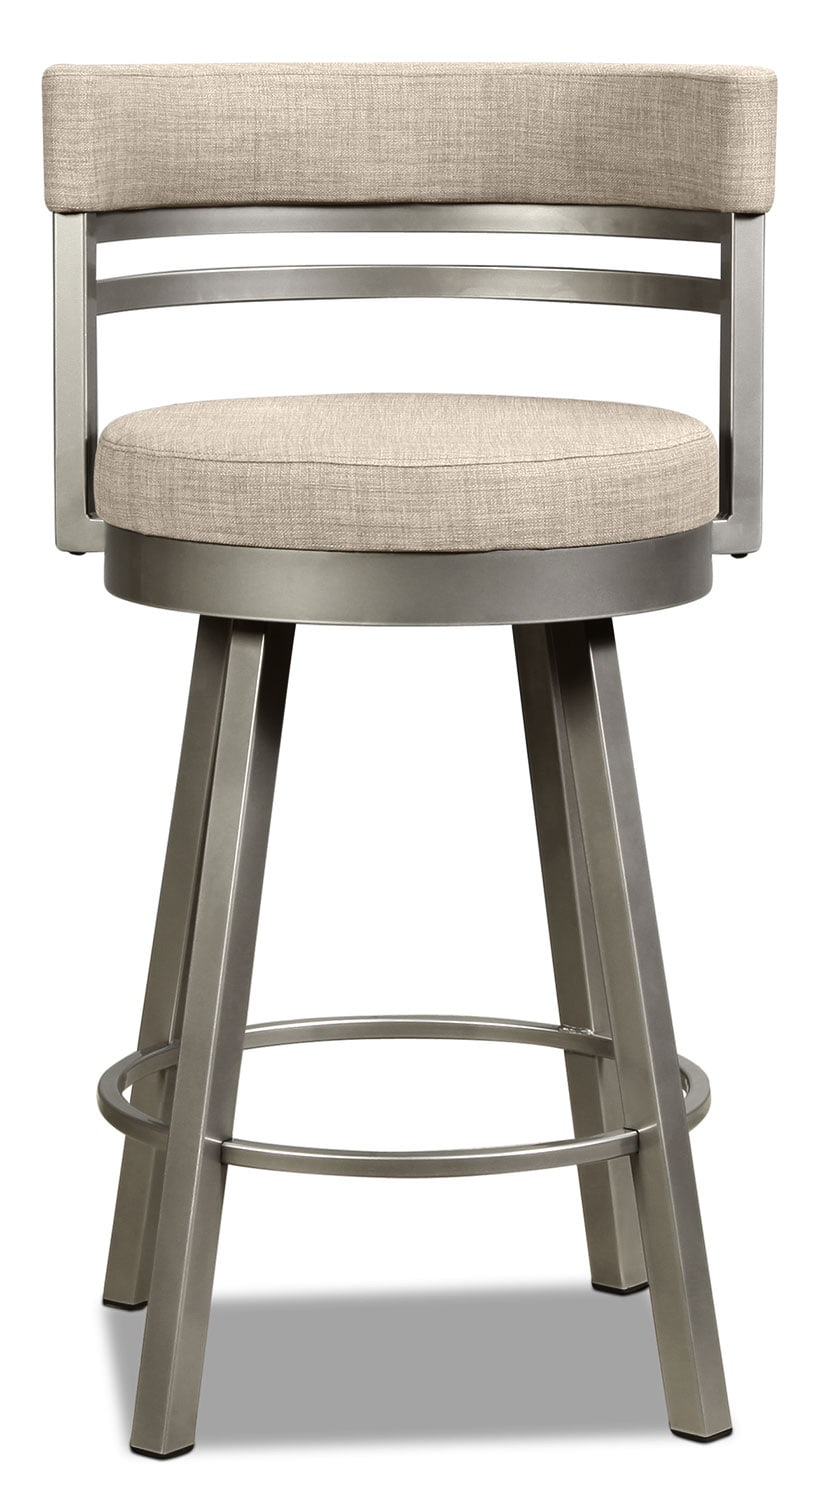 Dining Room Furniture - Ronny Counter-Height Stool